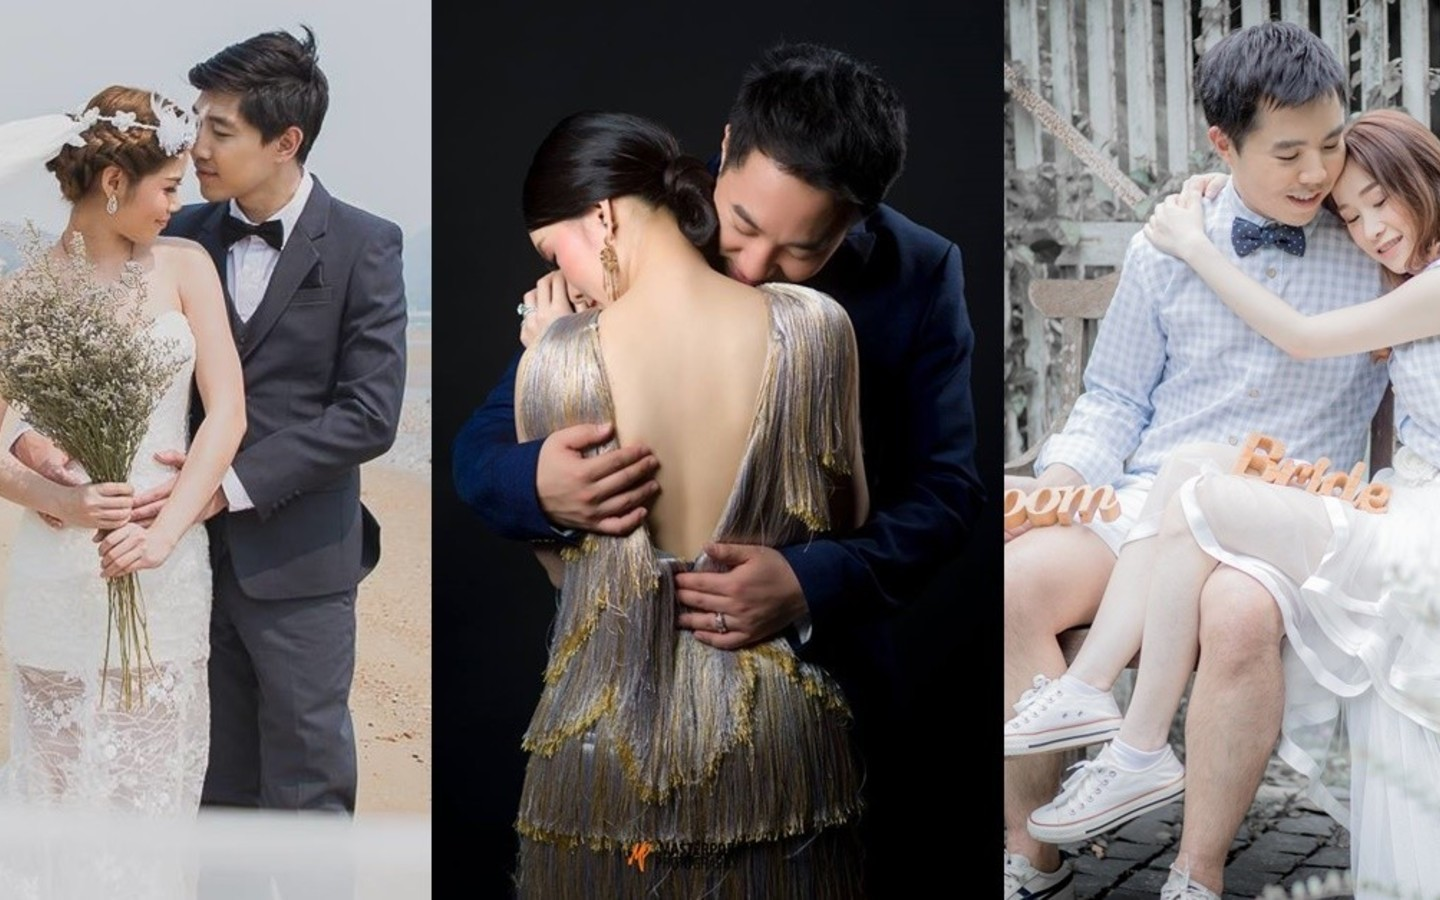 25 Pre Wedding Ideas For Sweet A Holding In Arms Concept That Will Make The Best Impression